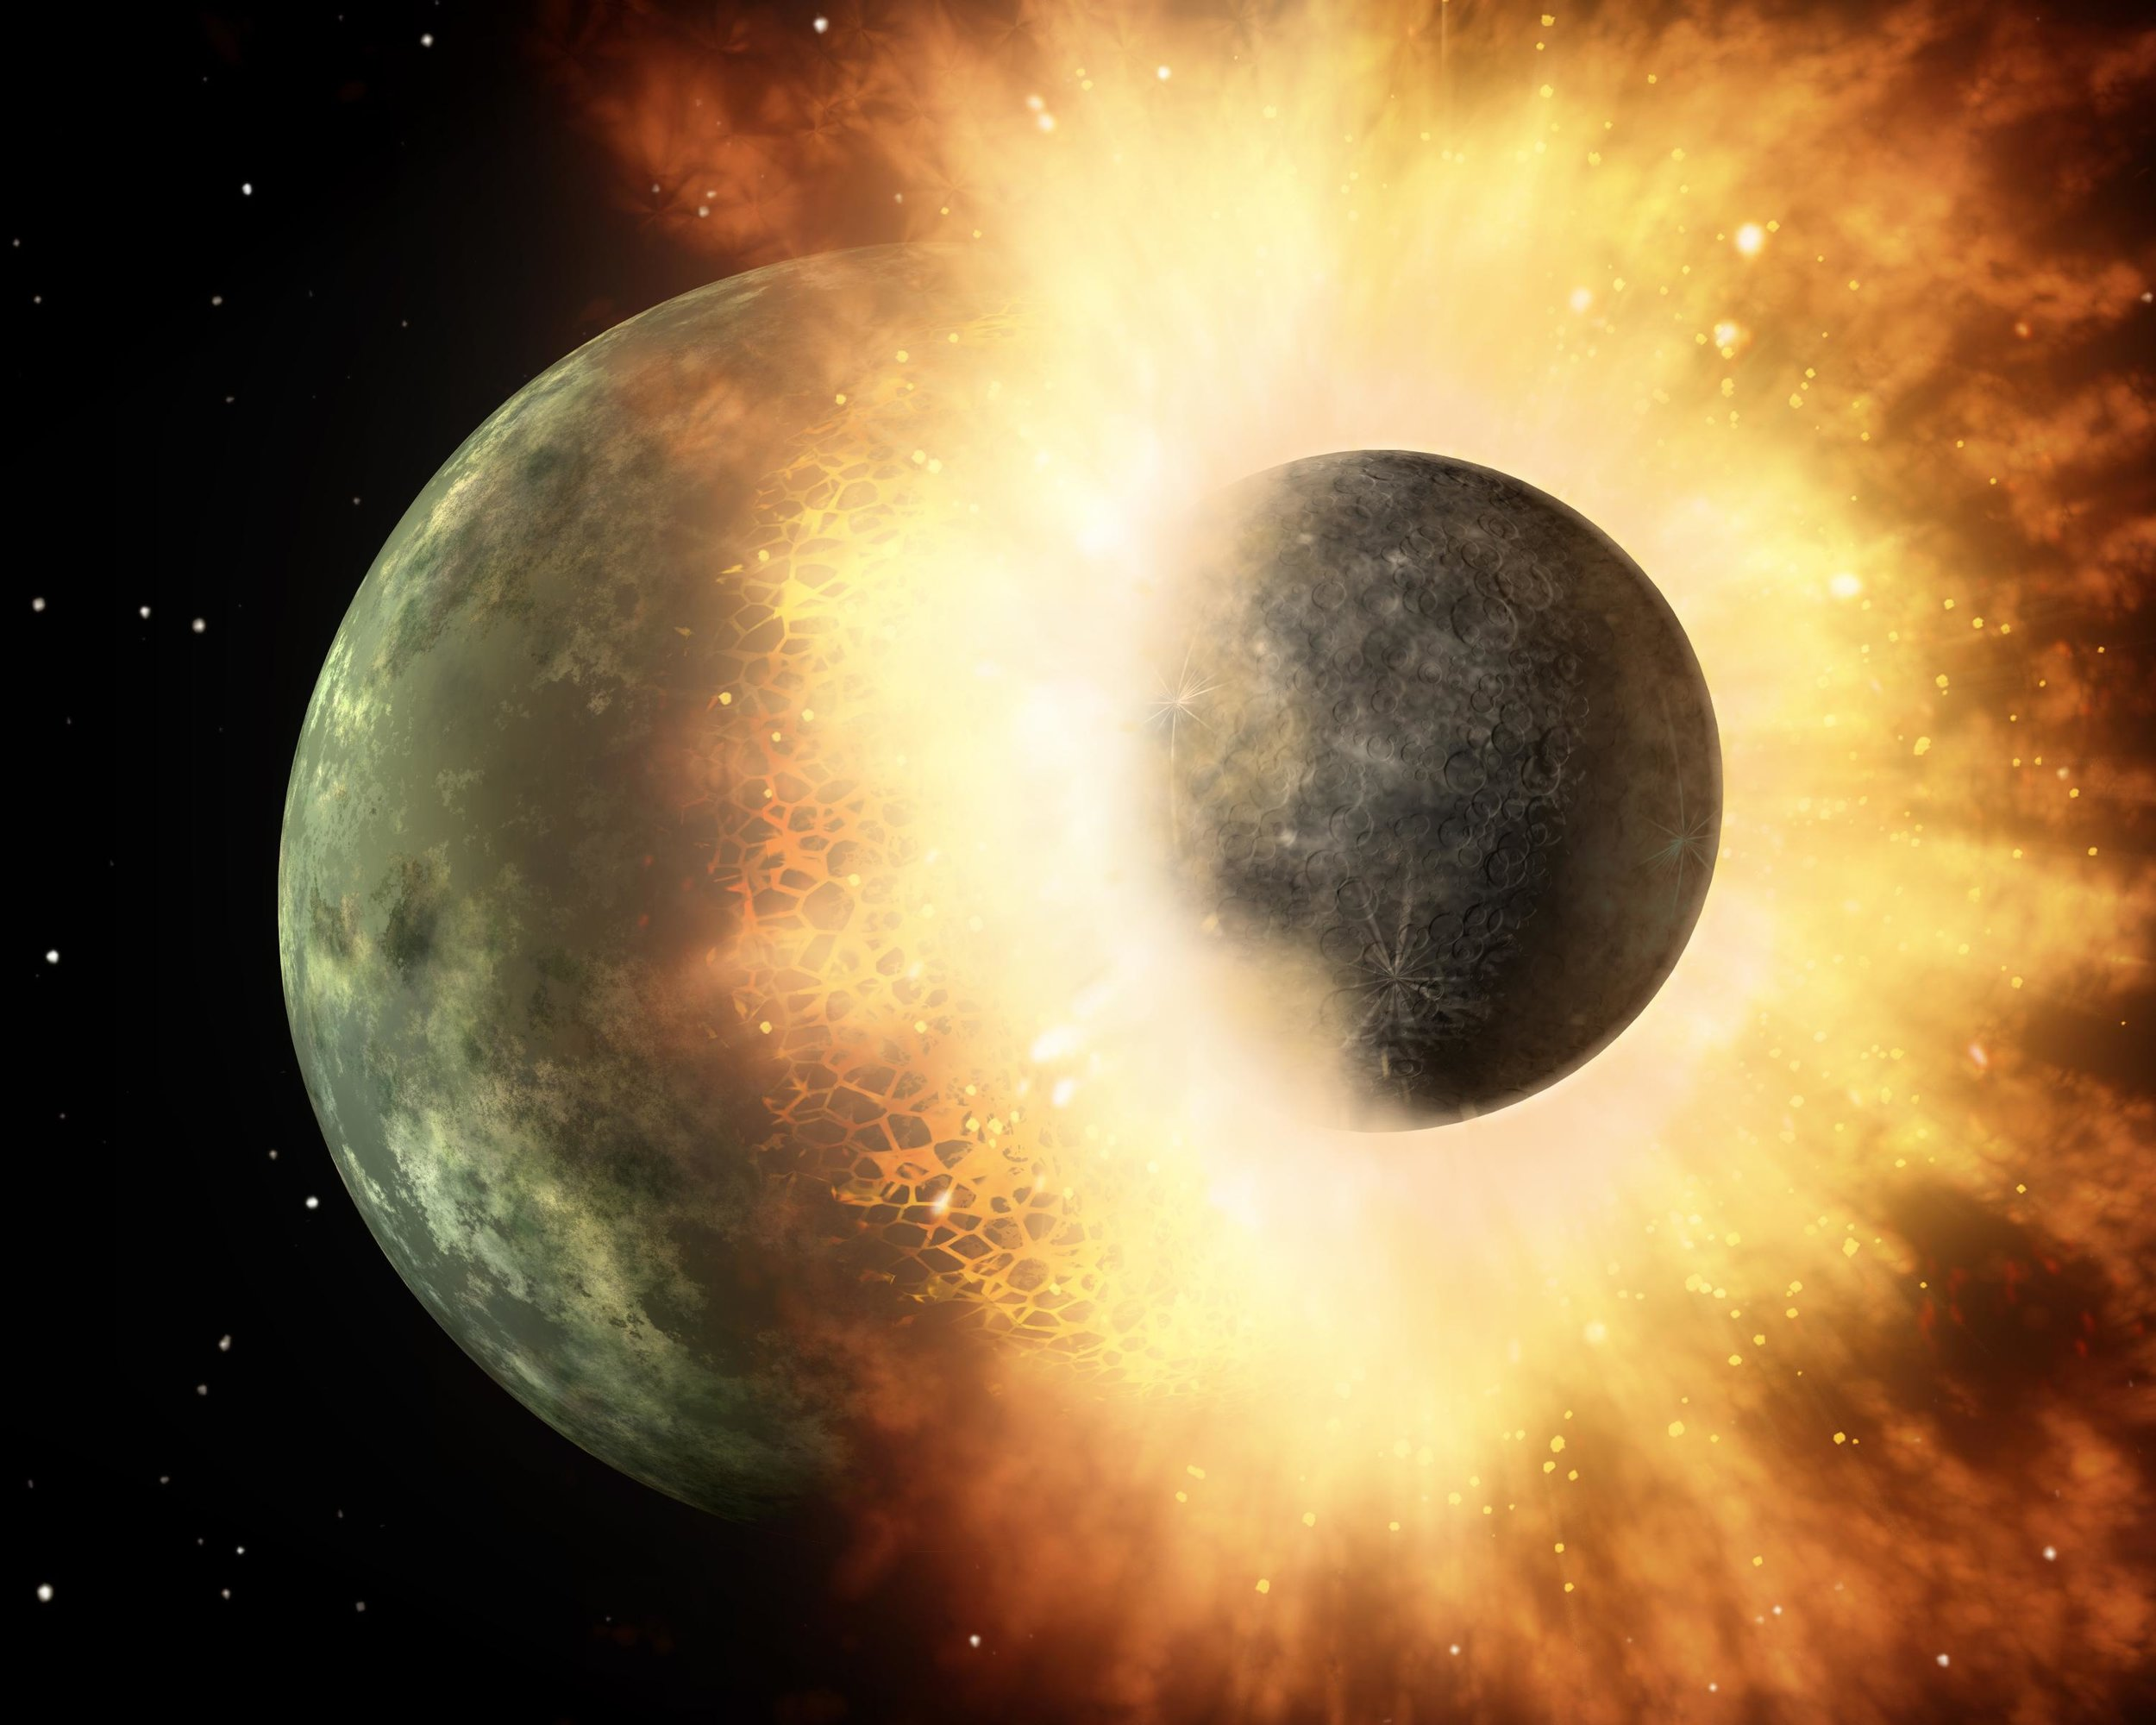 Artist's concept of a collision that is believed to have taken place in the HD 172555 star system between a moon-sized object and a Mercury-sized planet. - Image Credit: NASA/JPL-Caltech